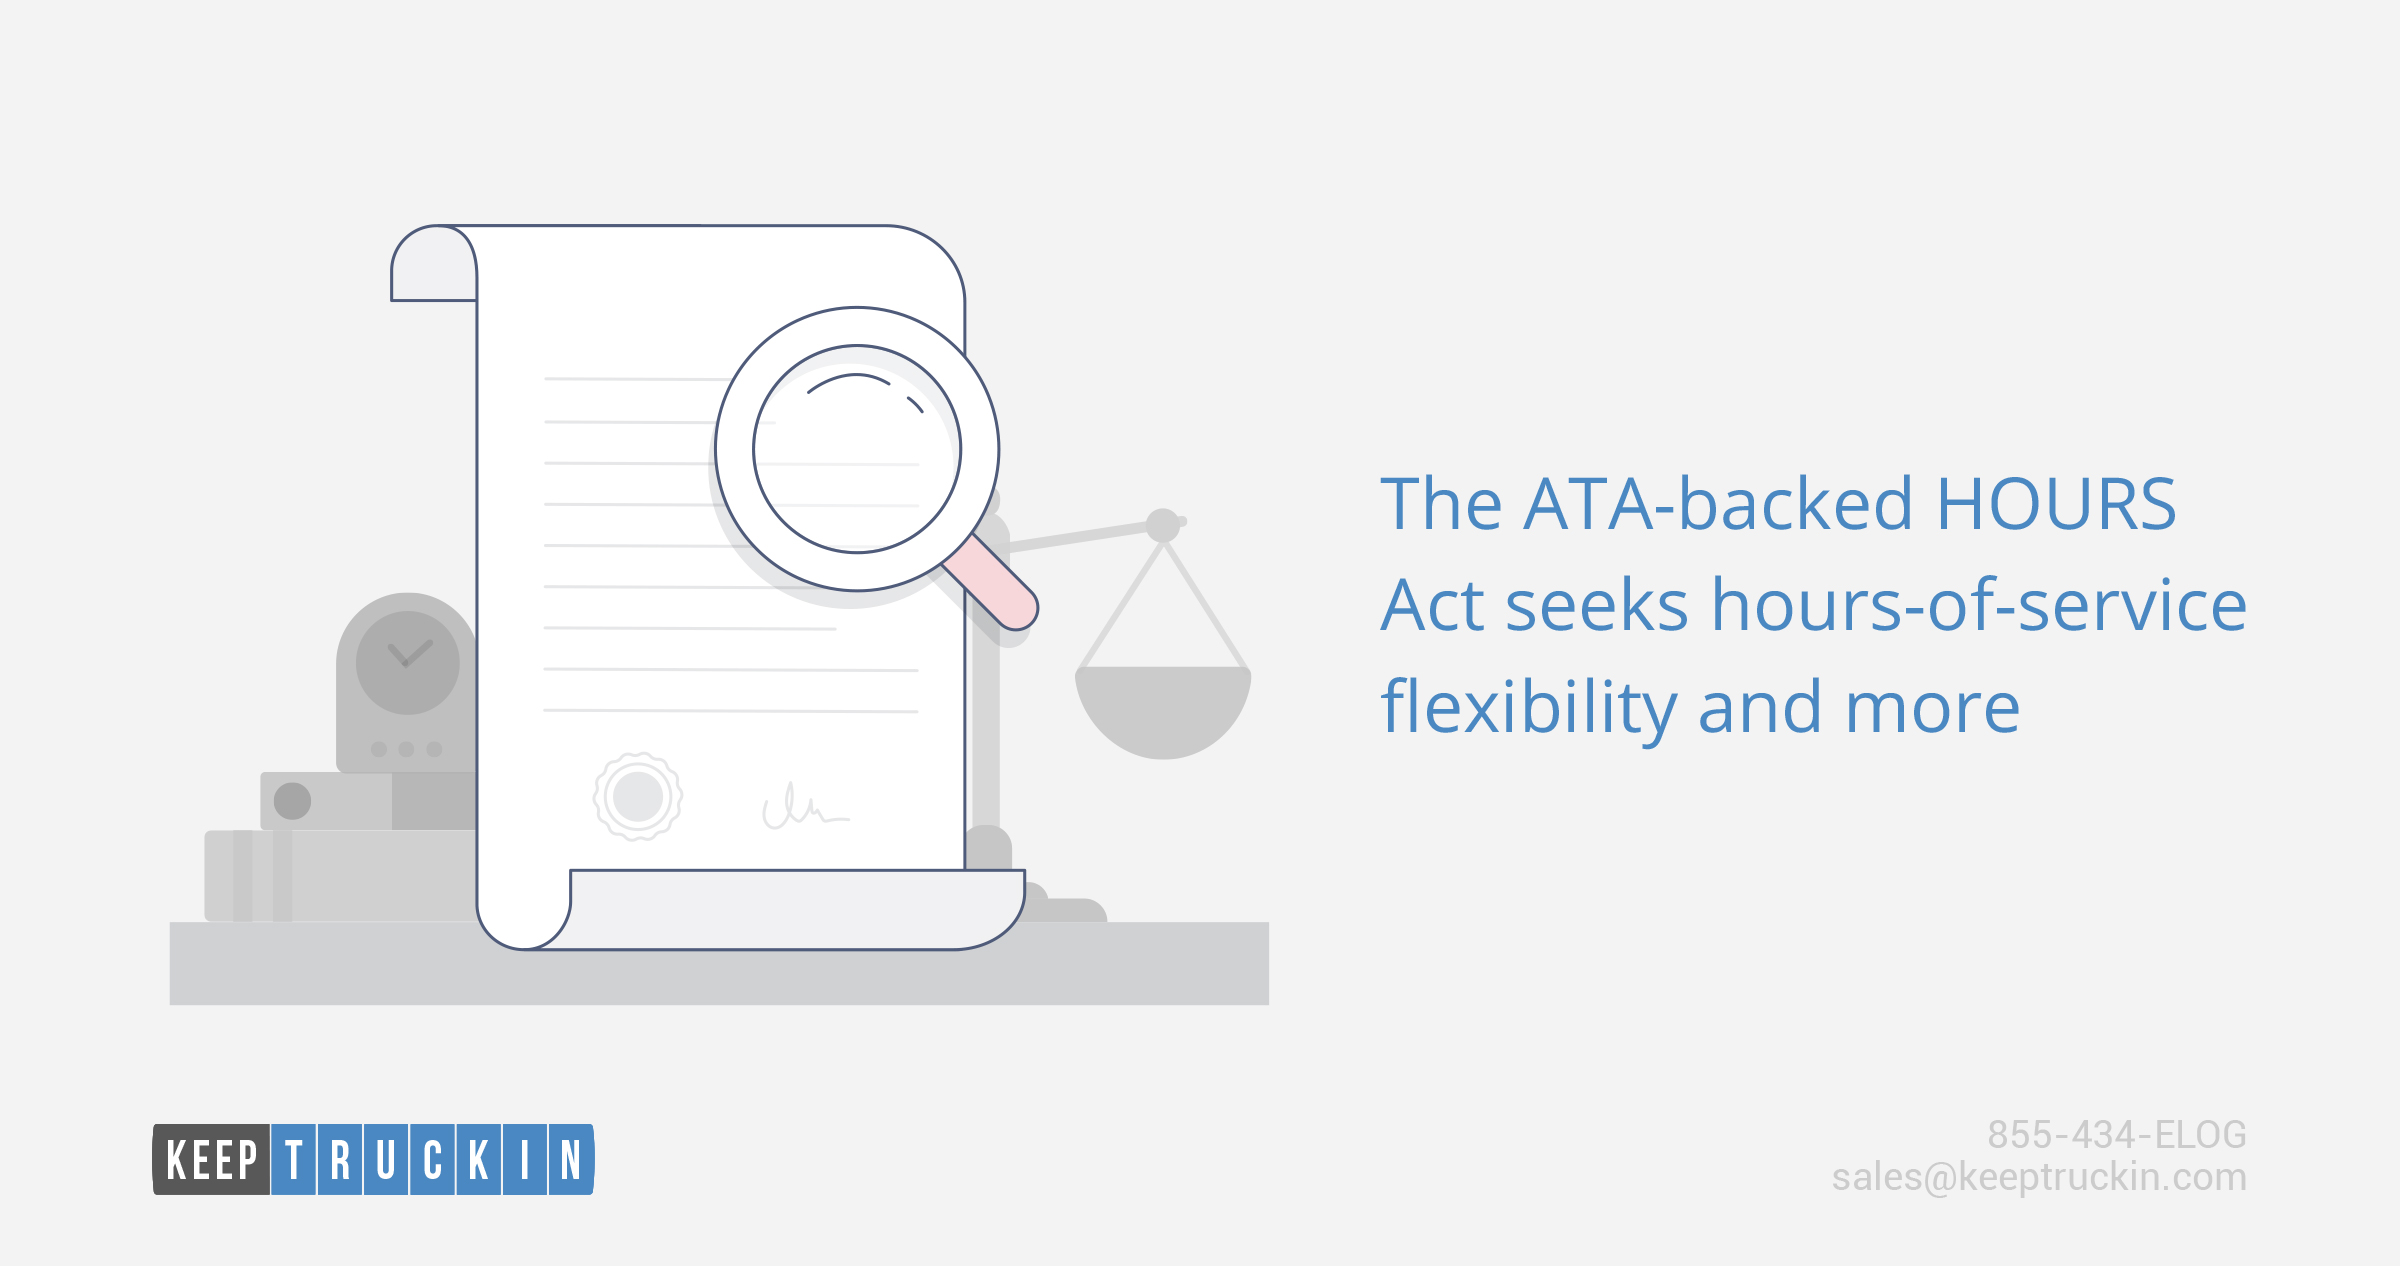 The ATA-backed HOURS Act seeks hours-of-service flexibility and more